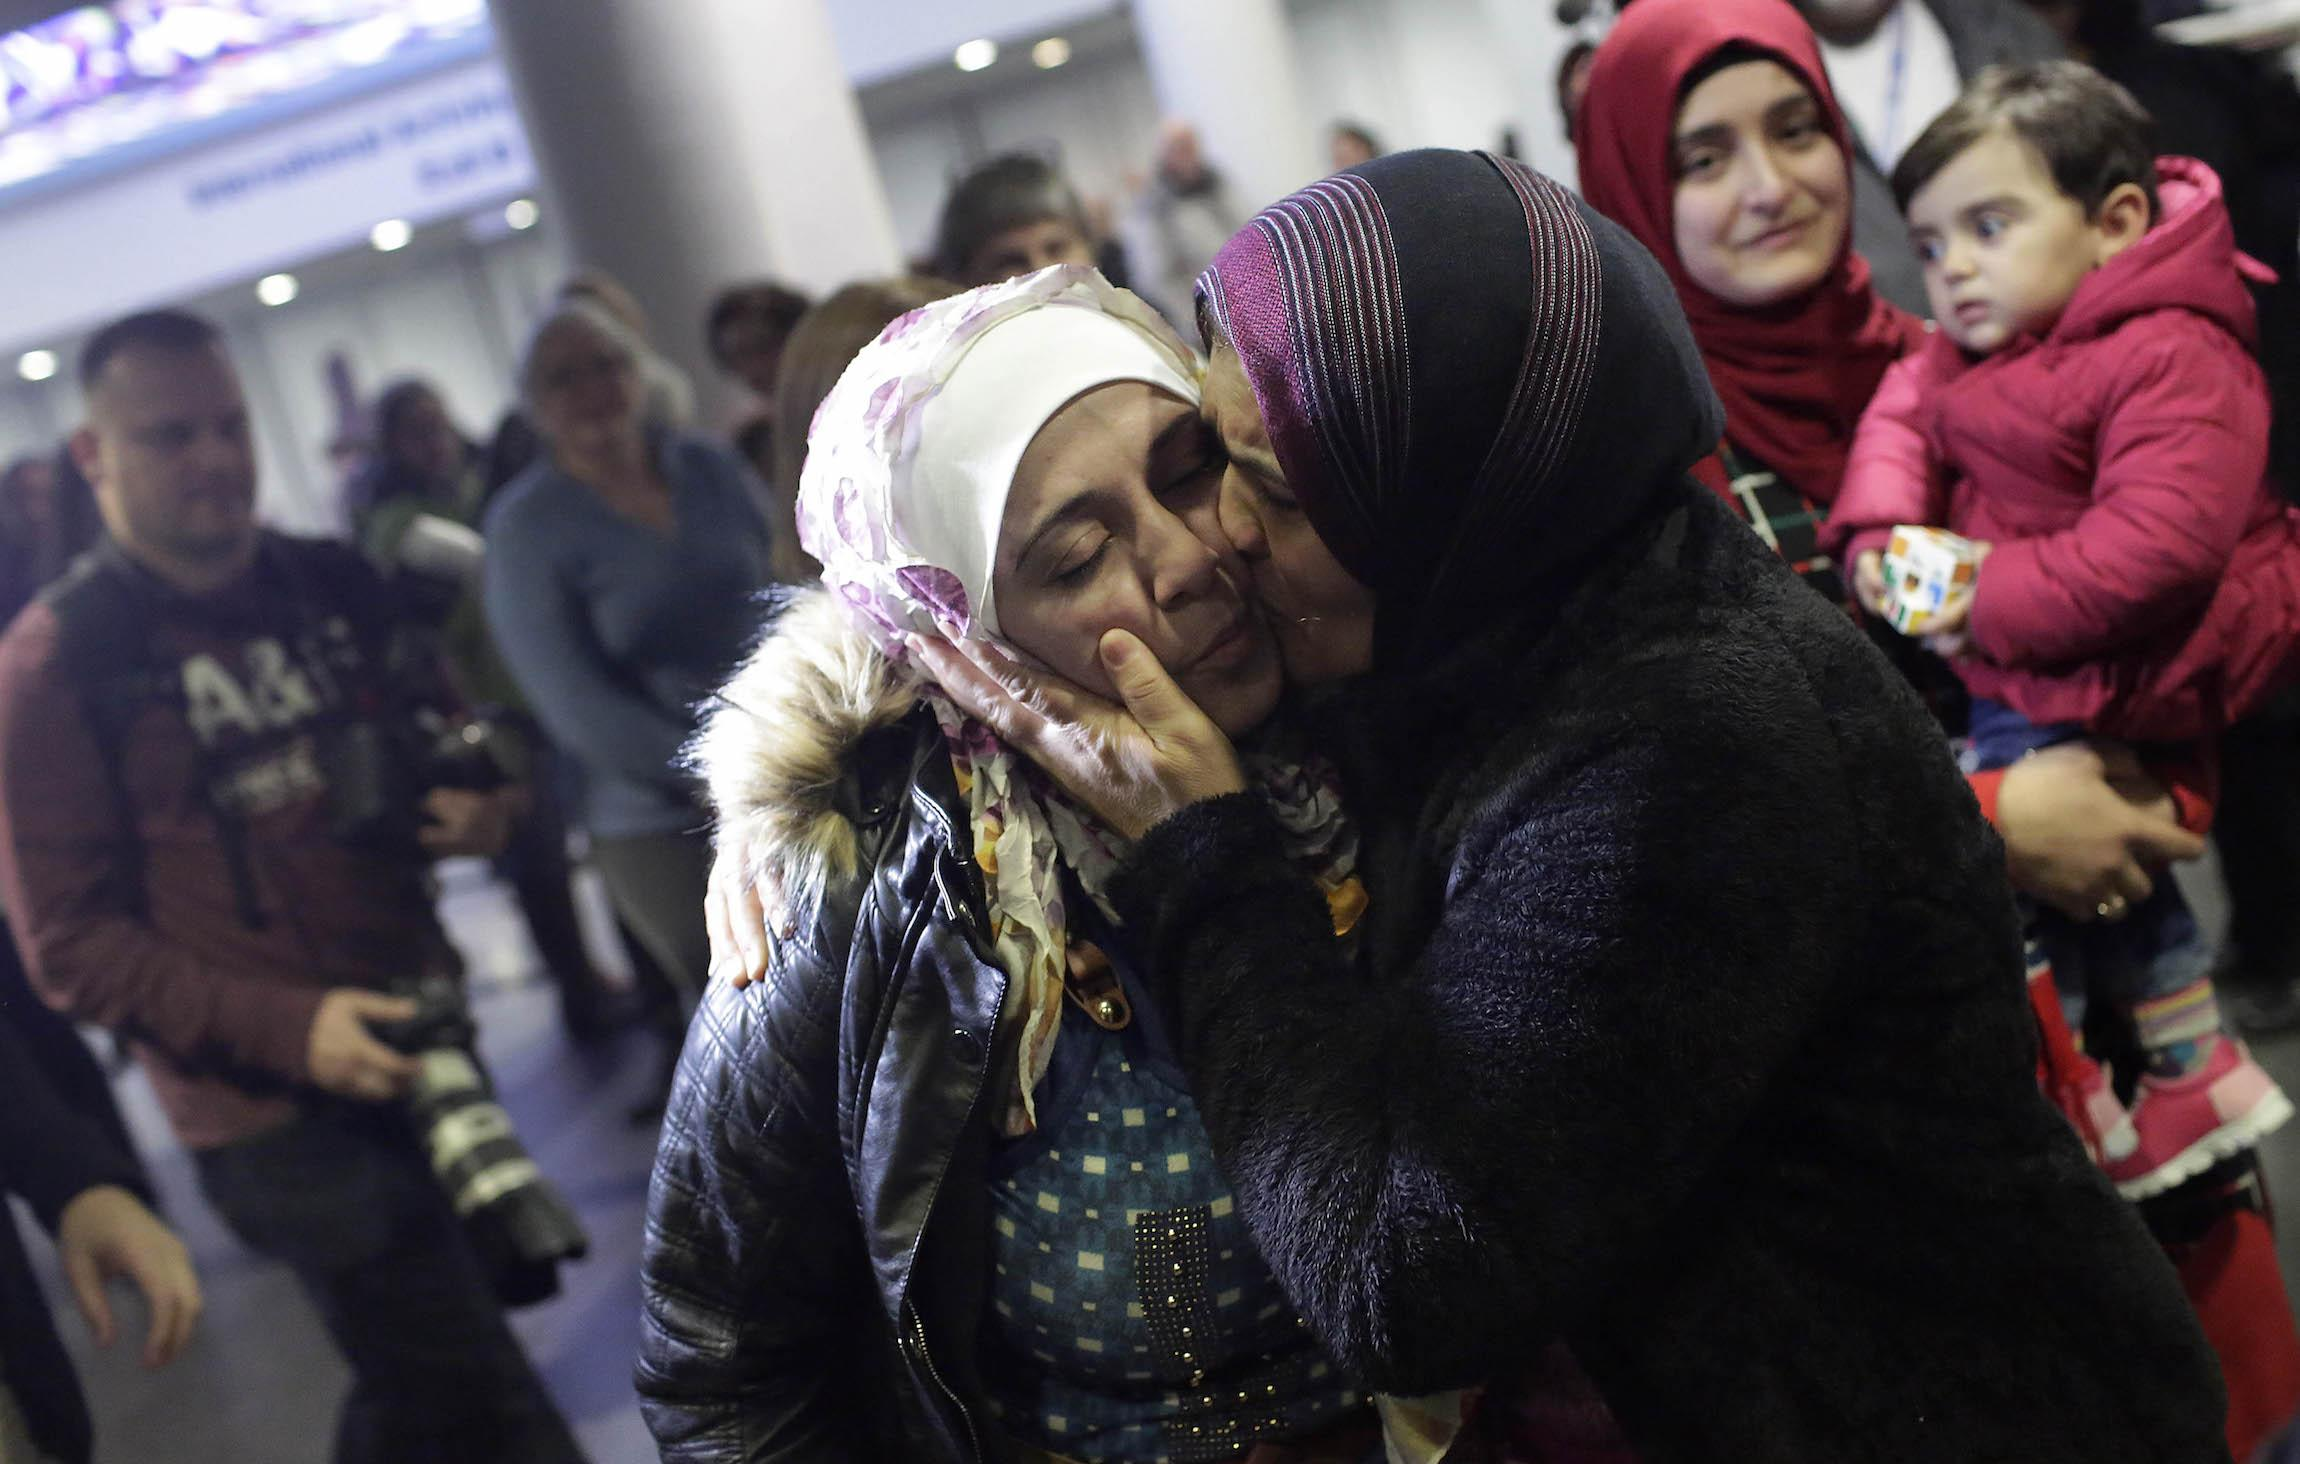 Donald Trump loses court battle to reinstate travel ban